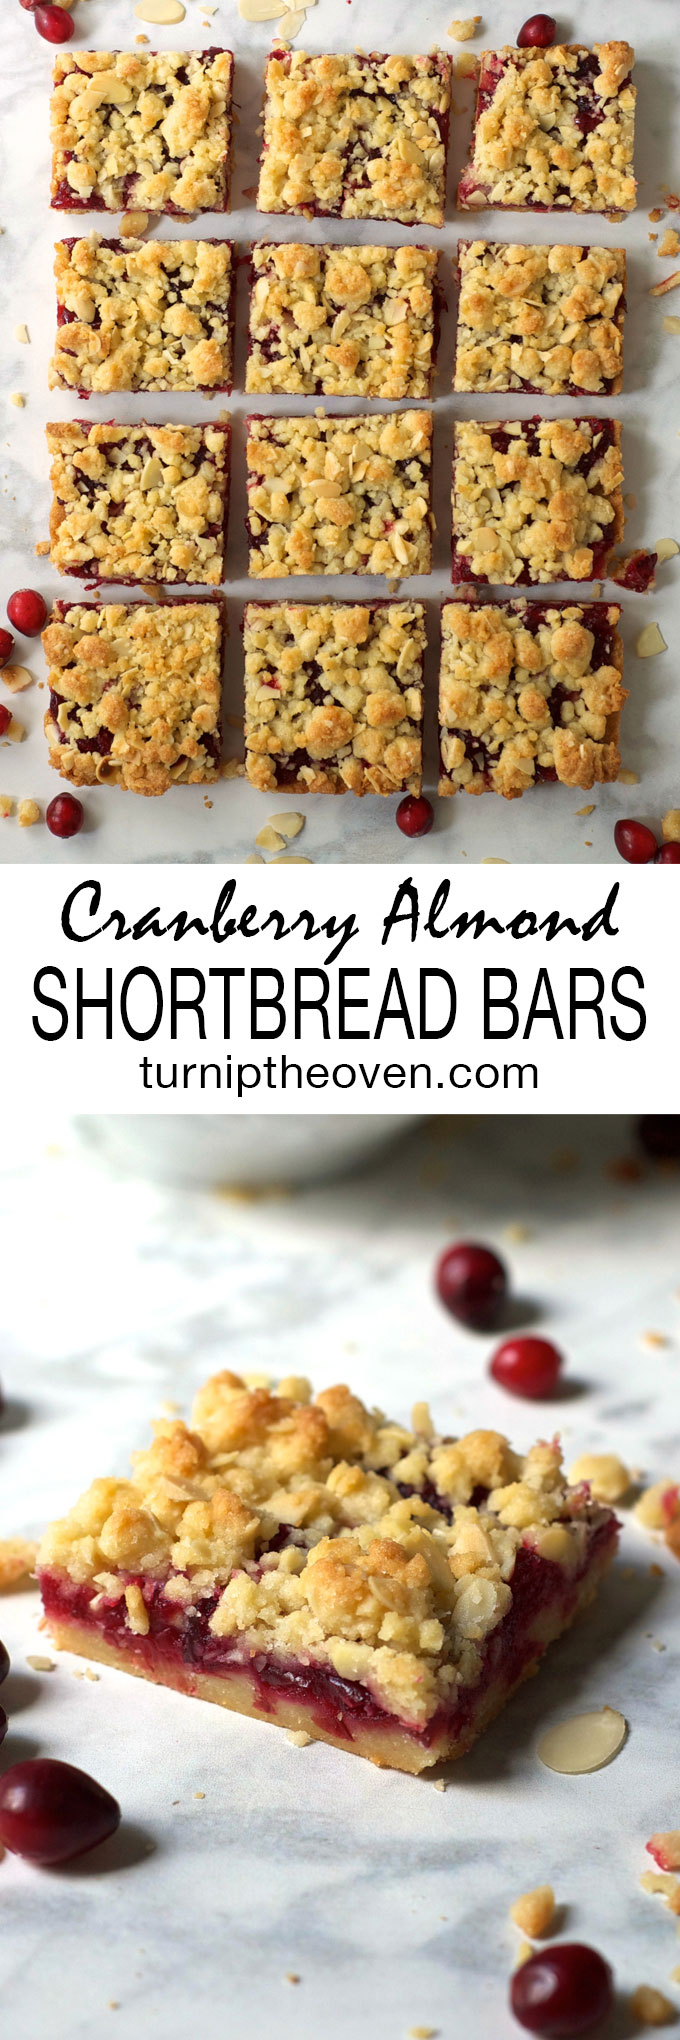 Cranberry Almond Shortbread Bars -- these simple, buttery, sweet-tart cranberry shortbread bars are the perfect holiday dessert!